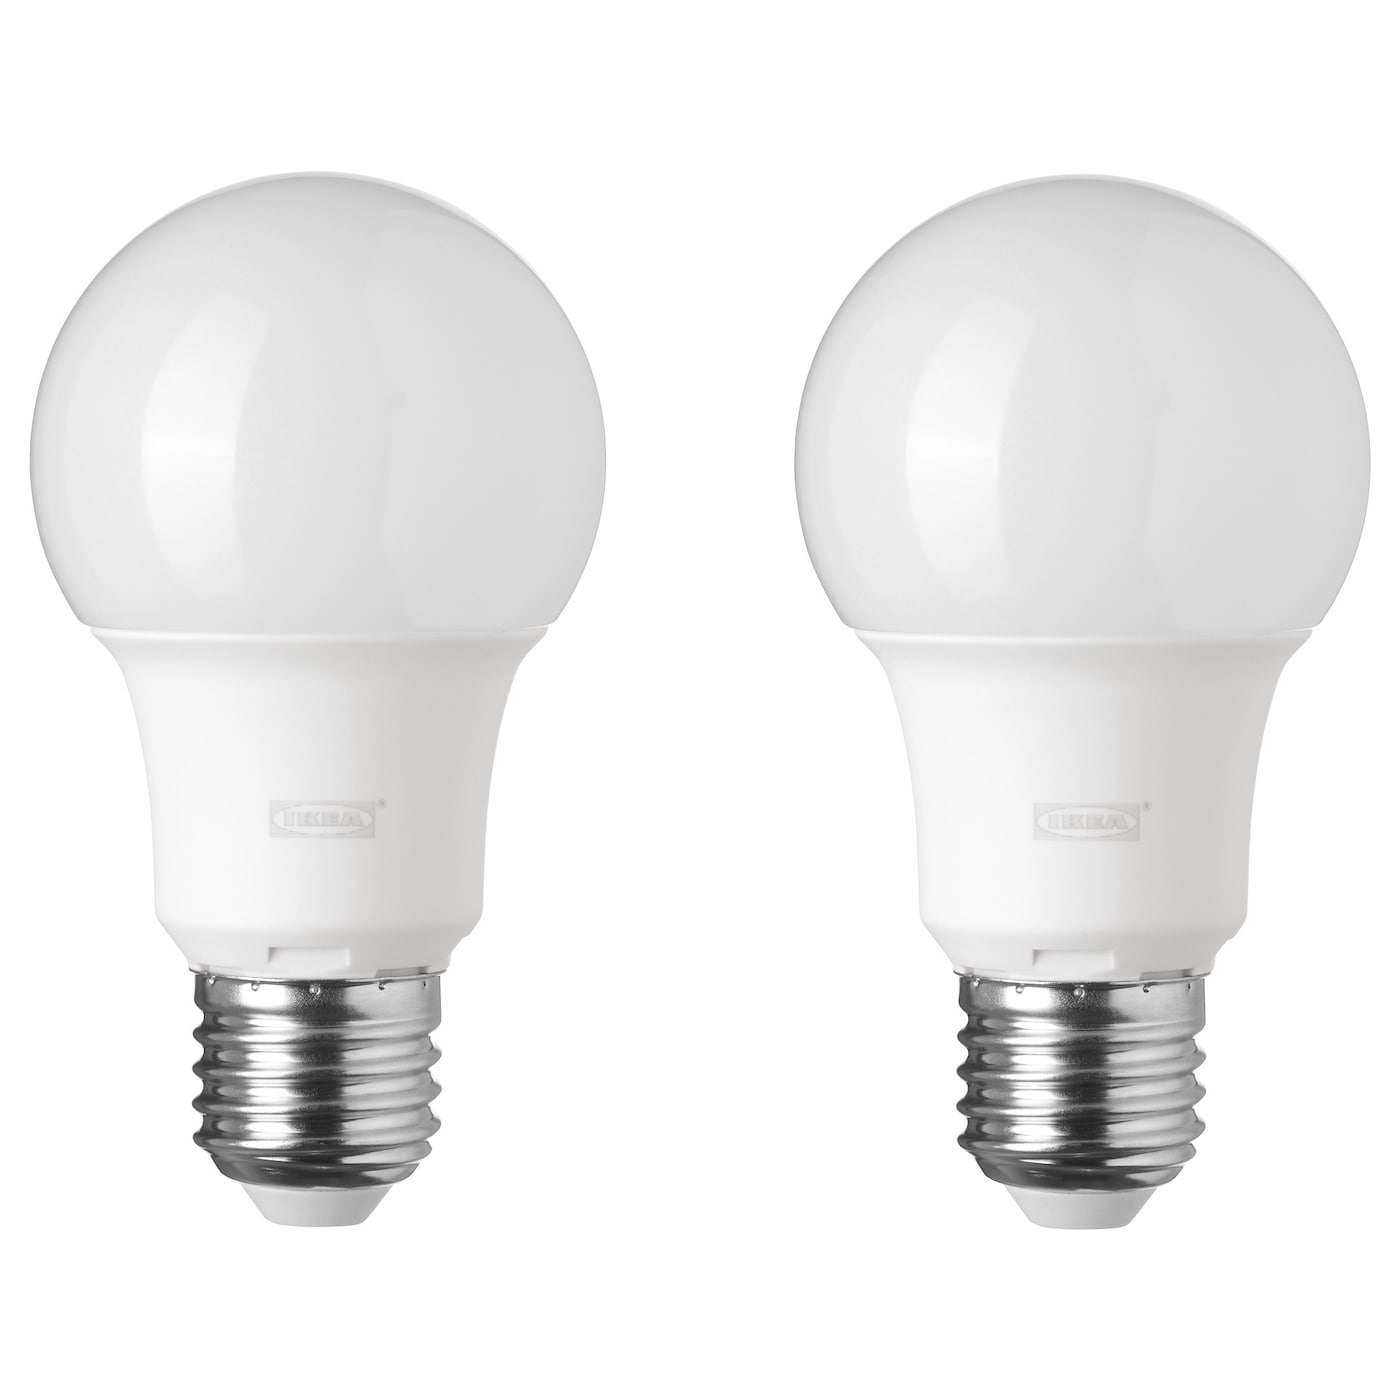 Light bulbs shop at ikea ireland - Ikea led e27 ...